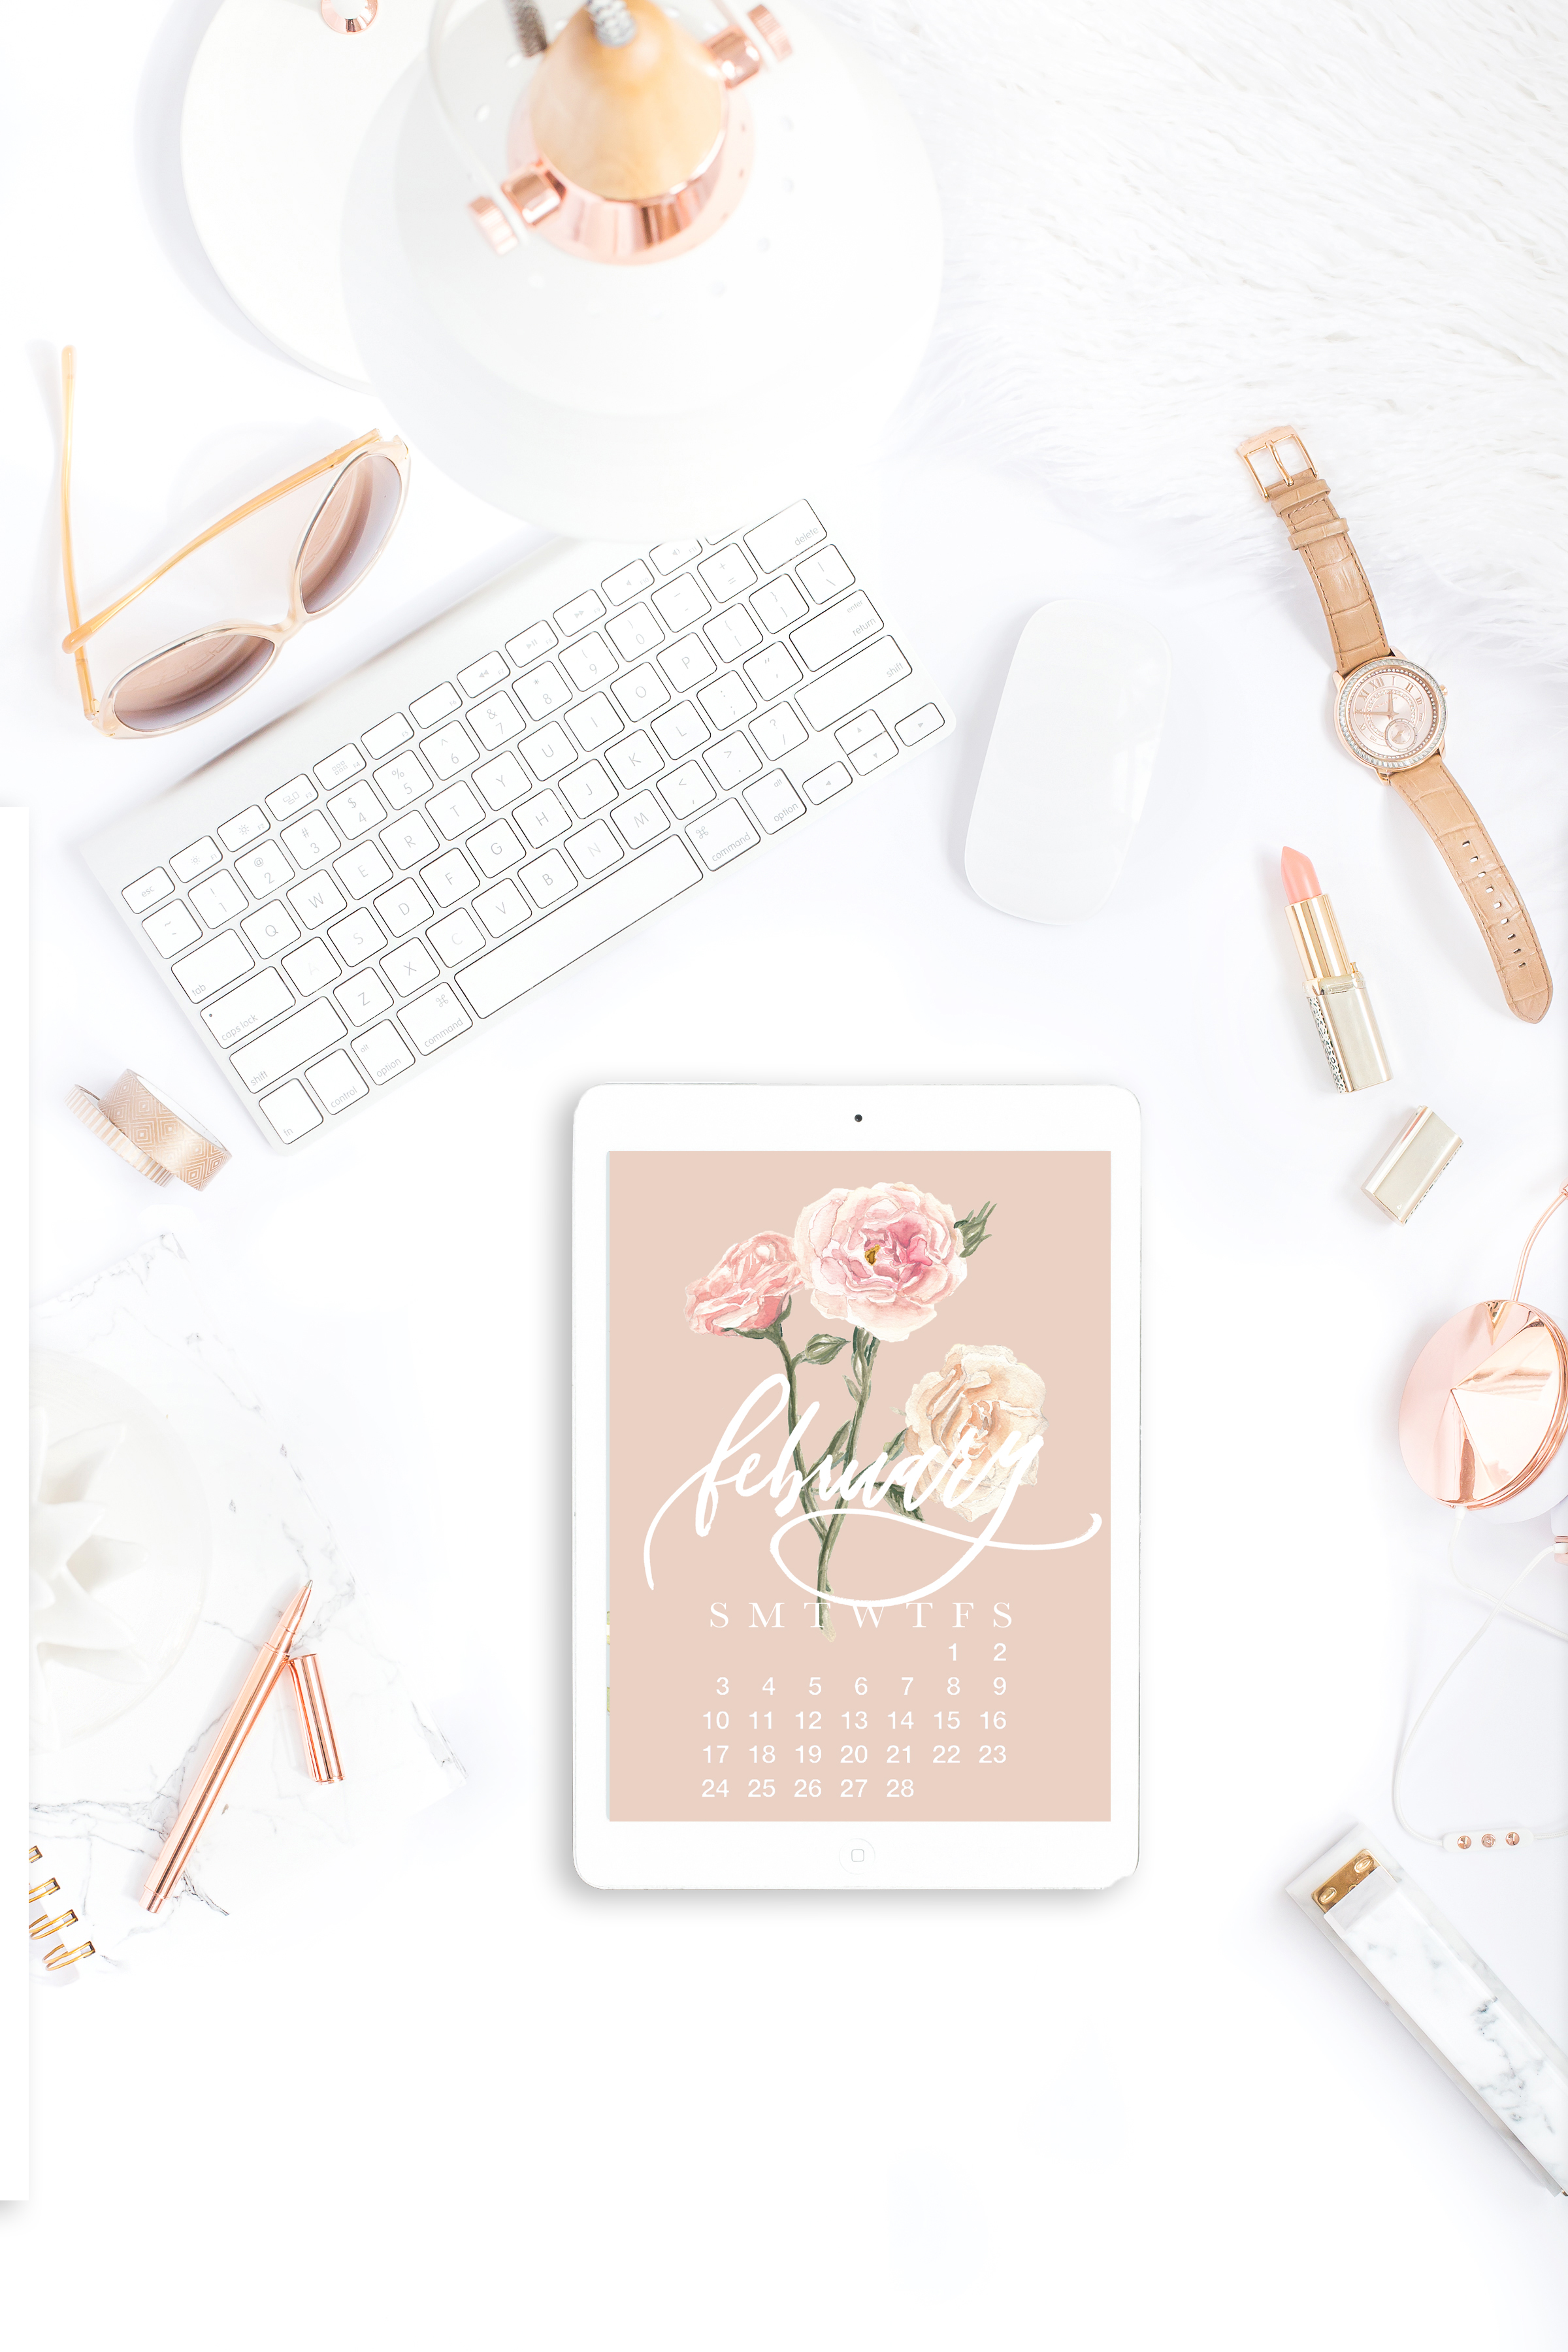 free-february-2019-desktop-and-iphone-calendar-watercolor-roses-brush-calligraphy-muted-pink.jpg